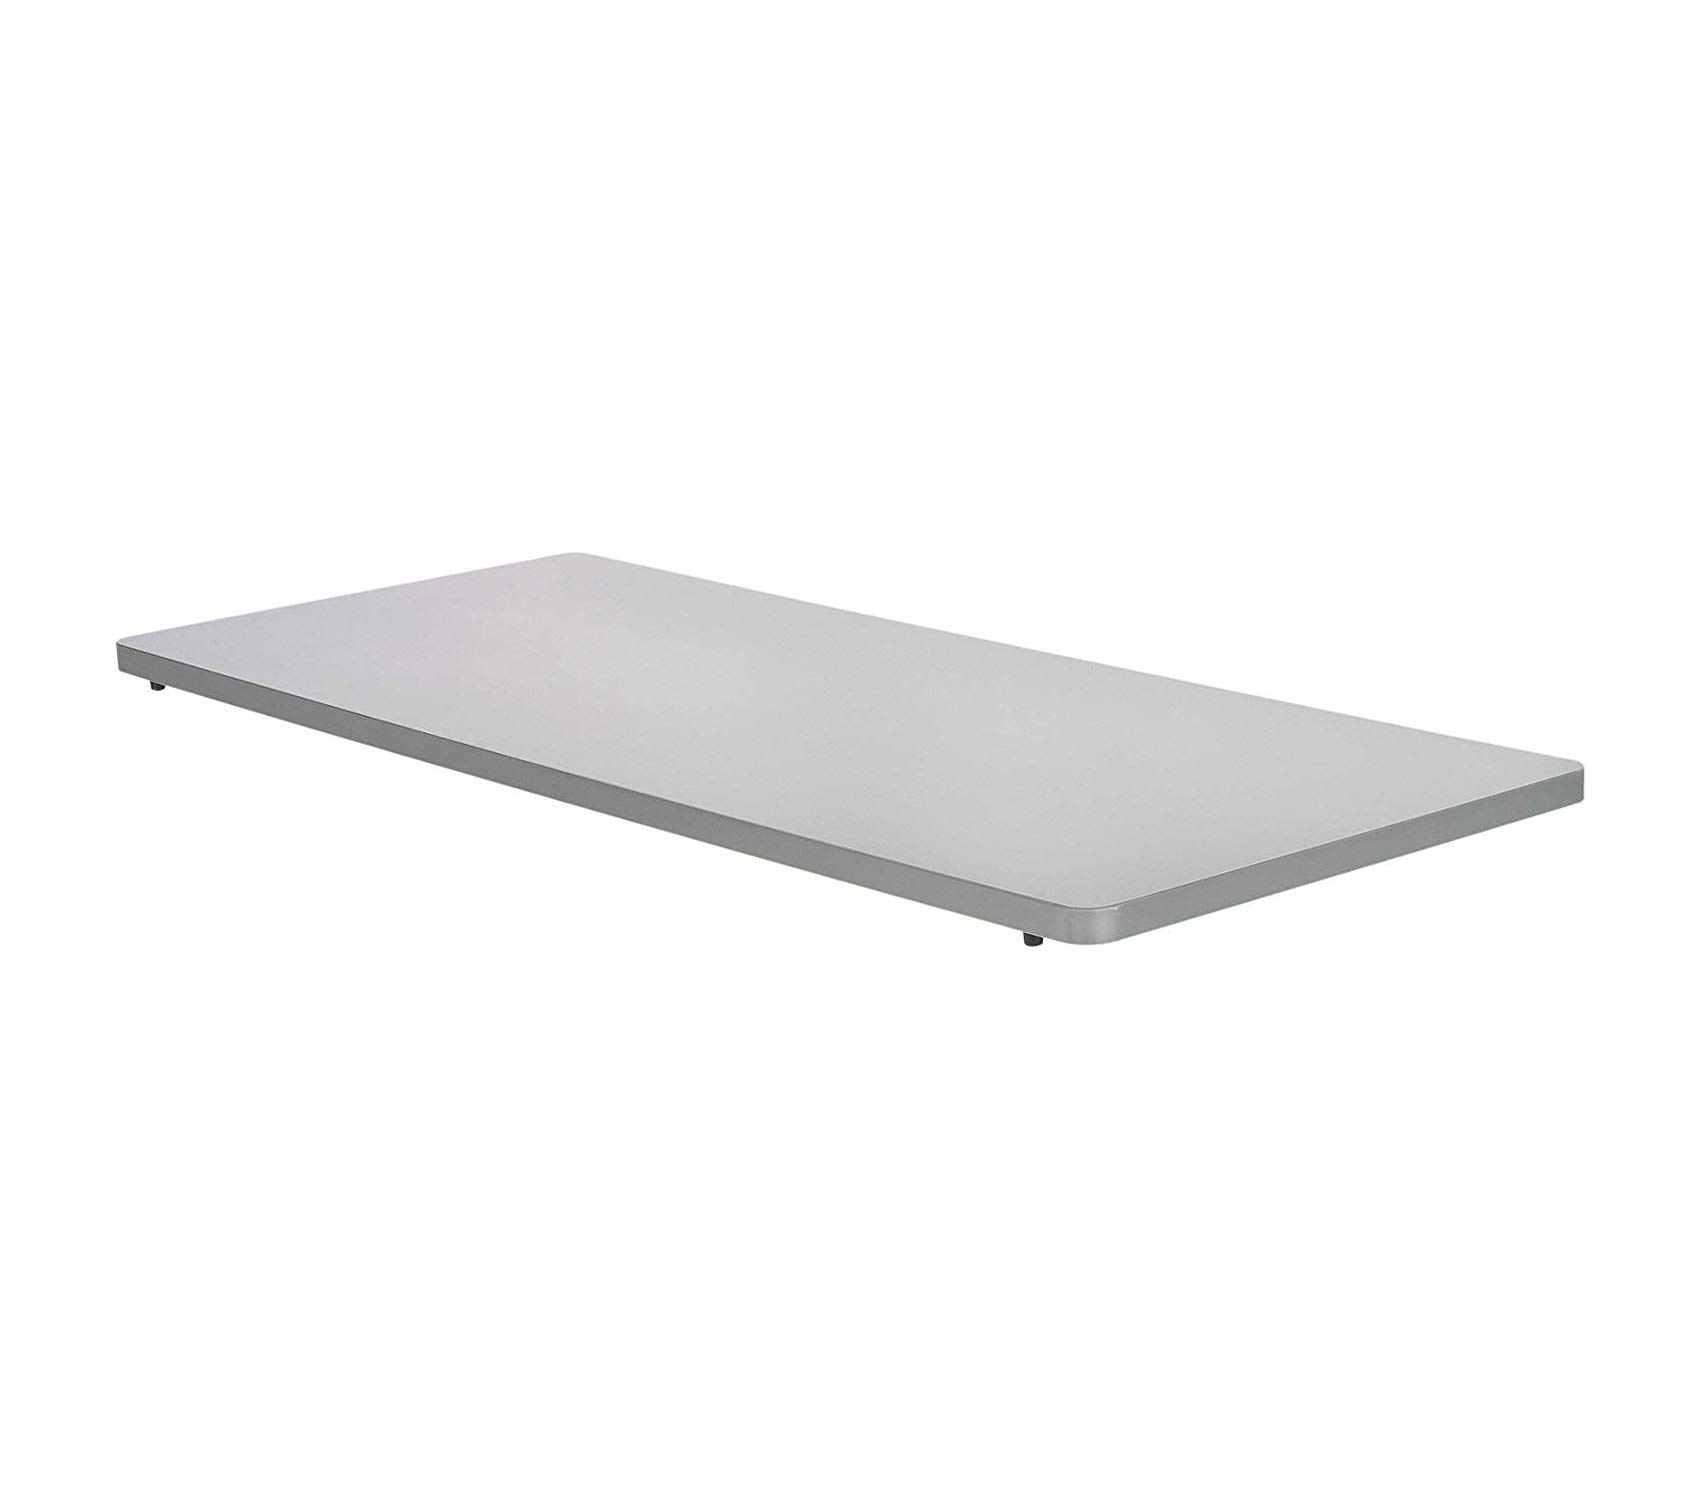 Sаfcо Impromptu Mobile Training Table Rectangle Top 48 by 24-Inch, Grey